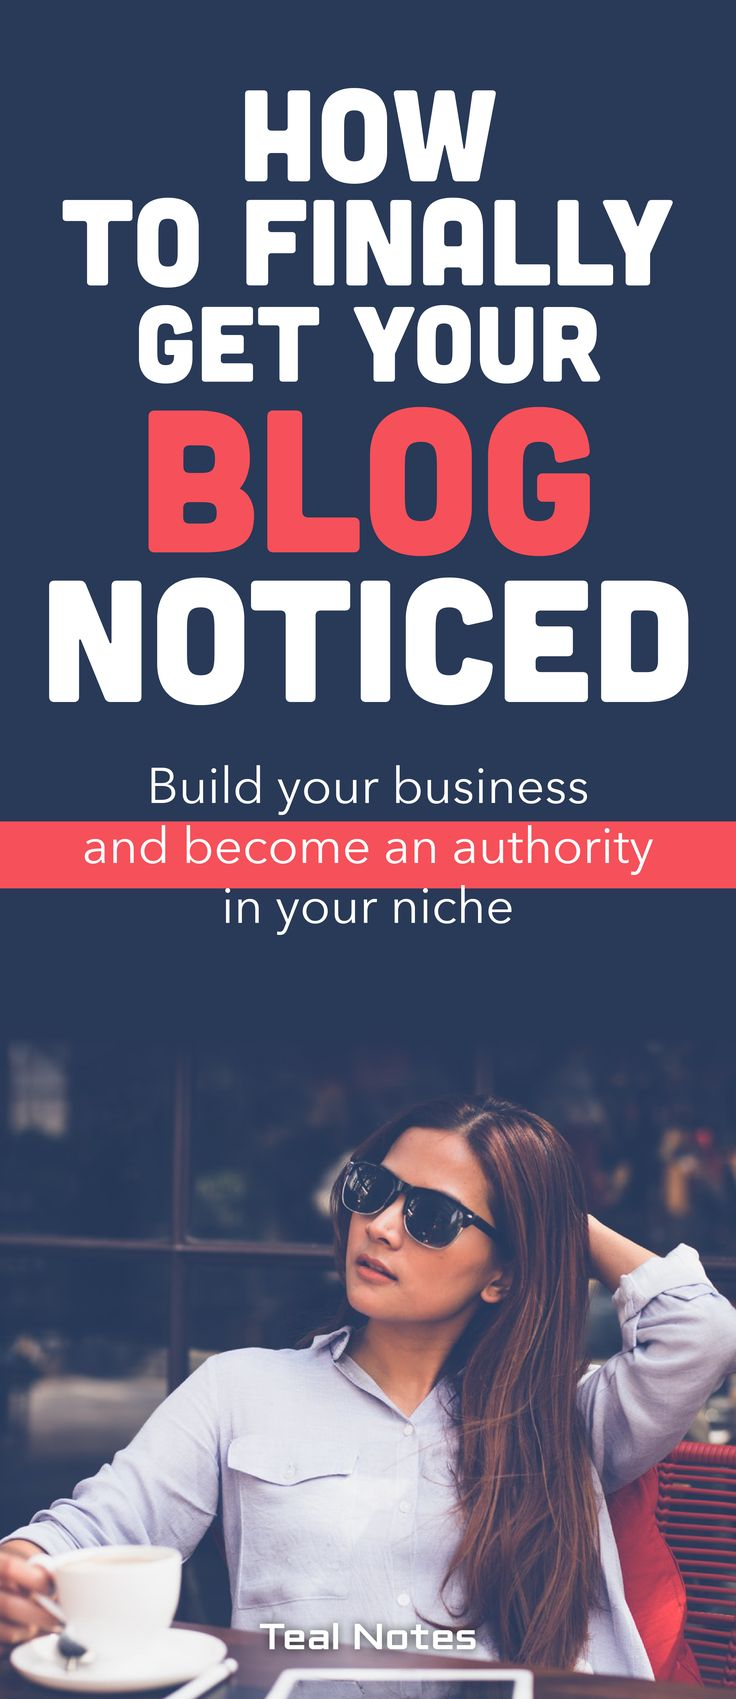 To be successful as a full-time blogger you need an online marketing strategy to make your presence known, grow a following, and become an authority in your niche. Check out this in-depth post for ideas, templates, examples, and actionable tips to create a process and a framework for your bog to thrive. Teal Notes | Online Marketing | Make Money Blogging | Strategy for Beginners |